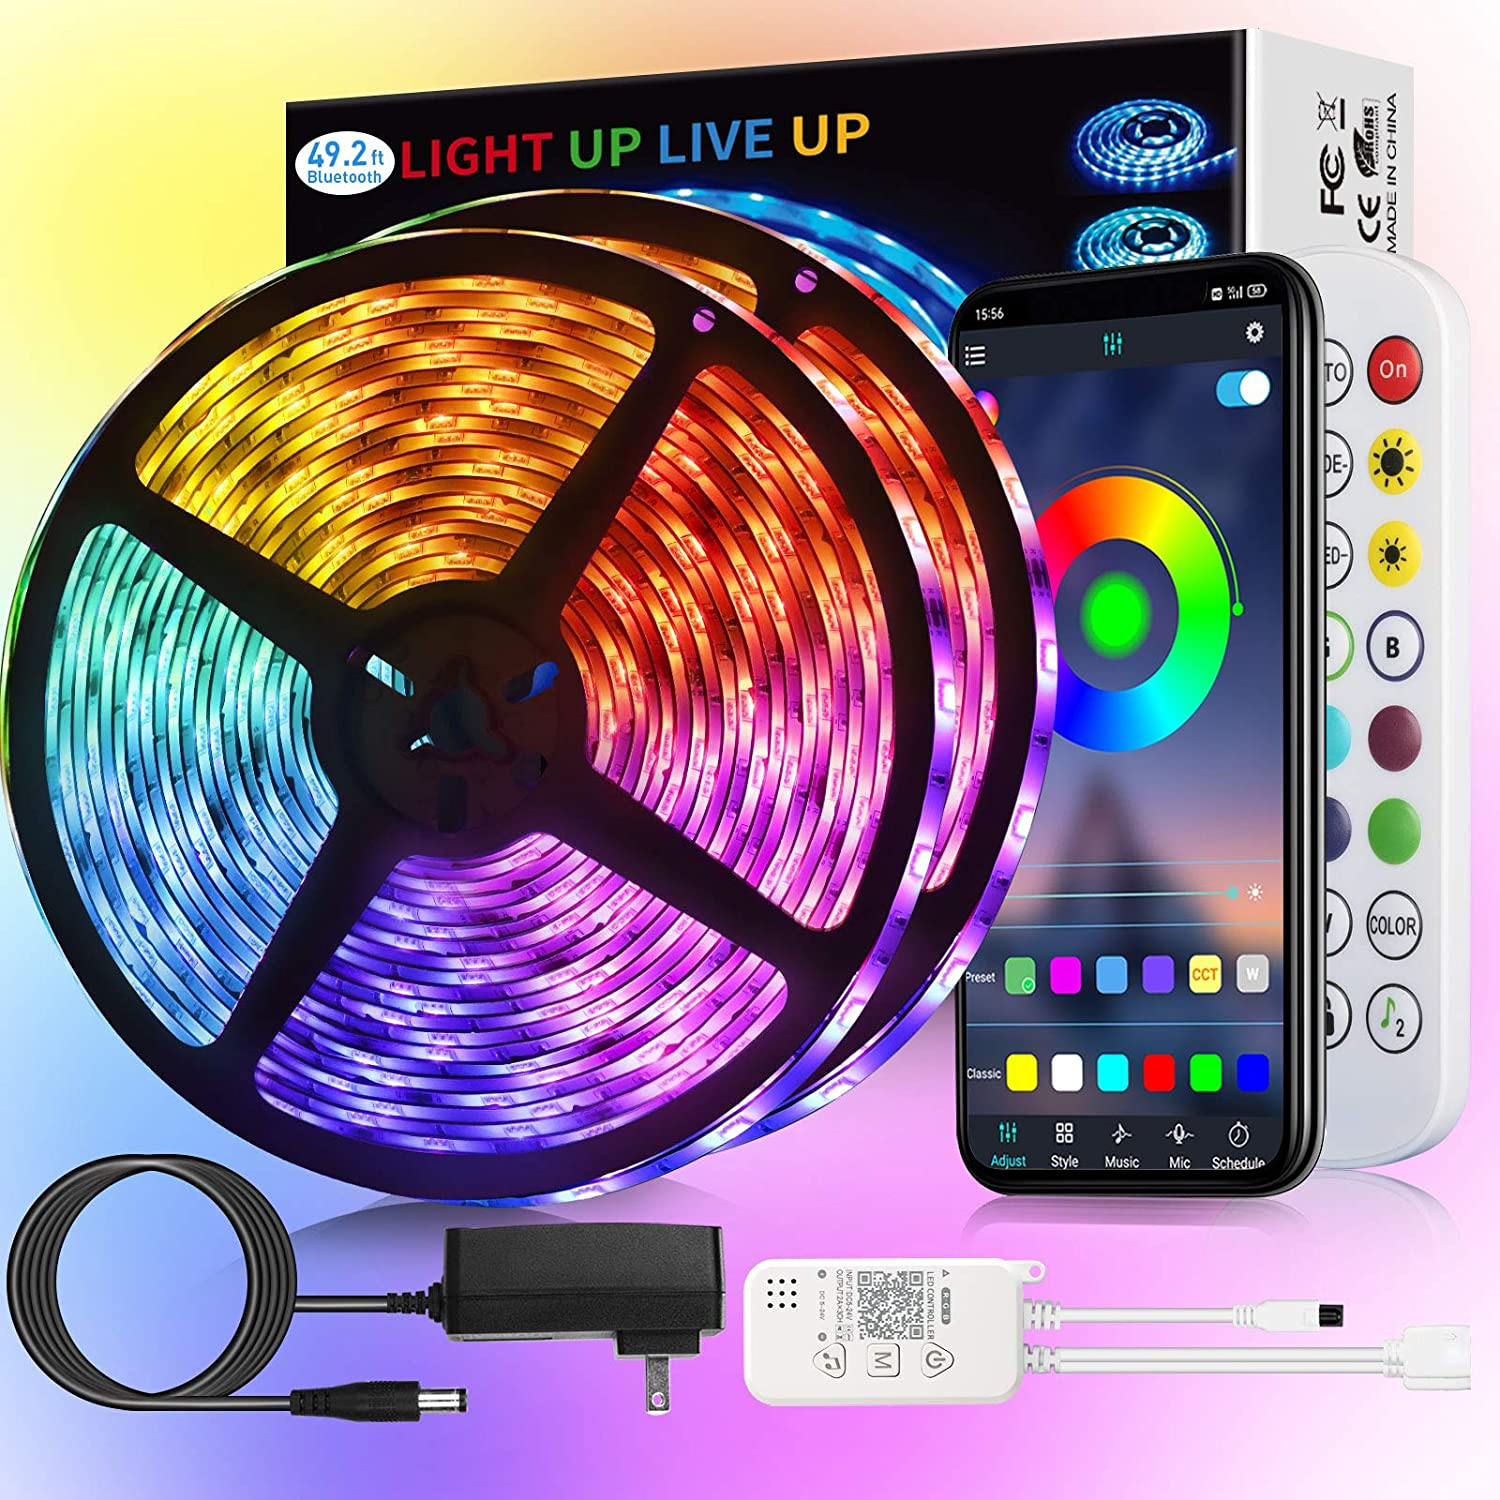 LED Strip Lights Waterproof IP65 Indianapolis Mall 49.2ft Cheap super special price AMSIKE RGB 5050 Lig